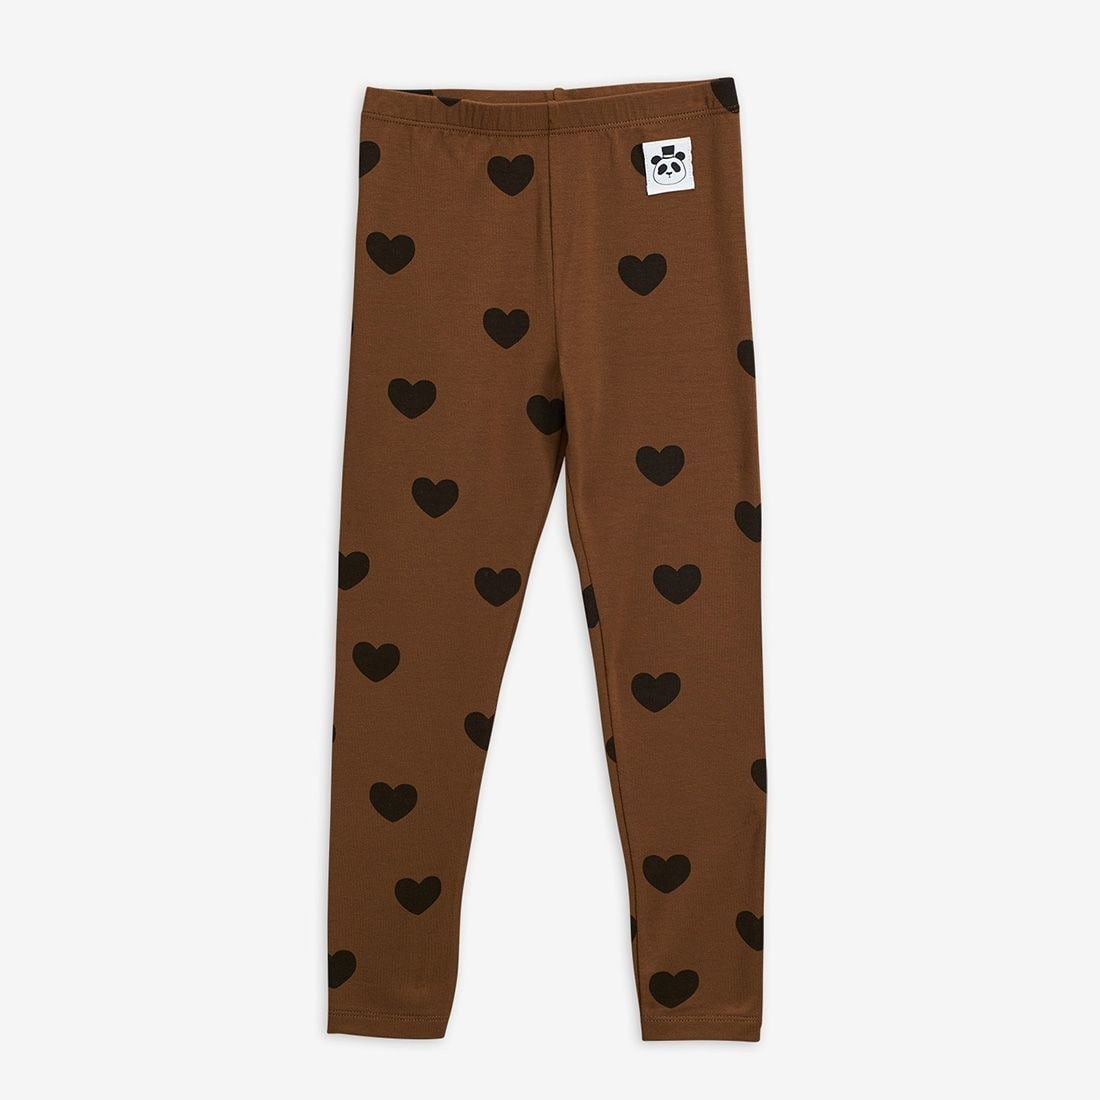 Brown Basic Hearts Leggings